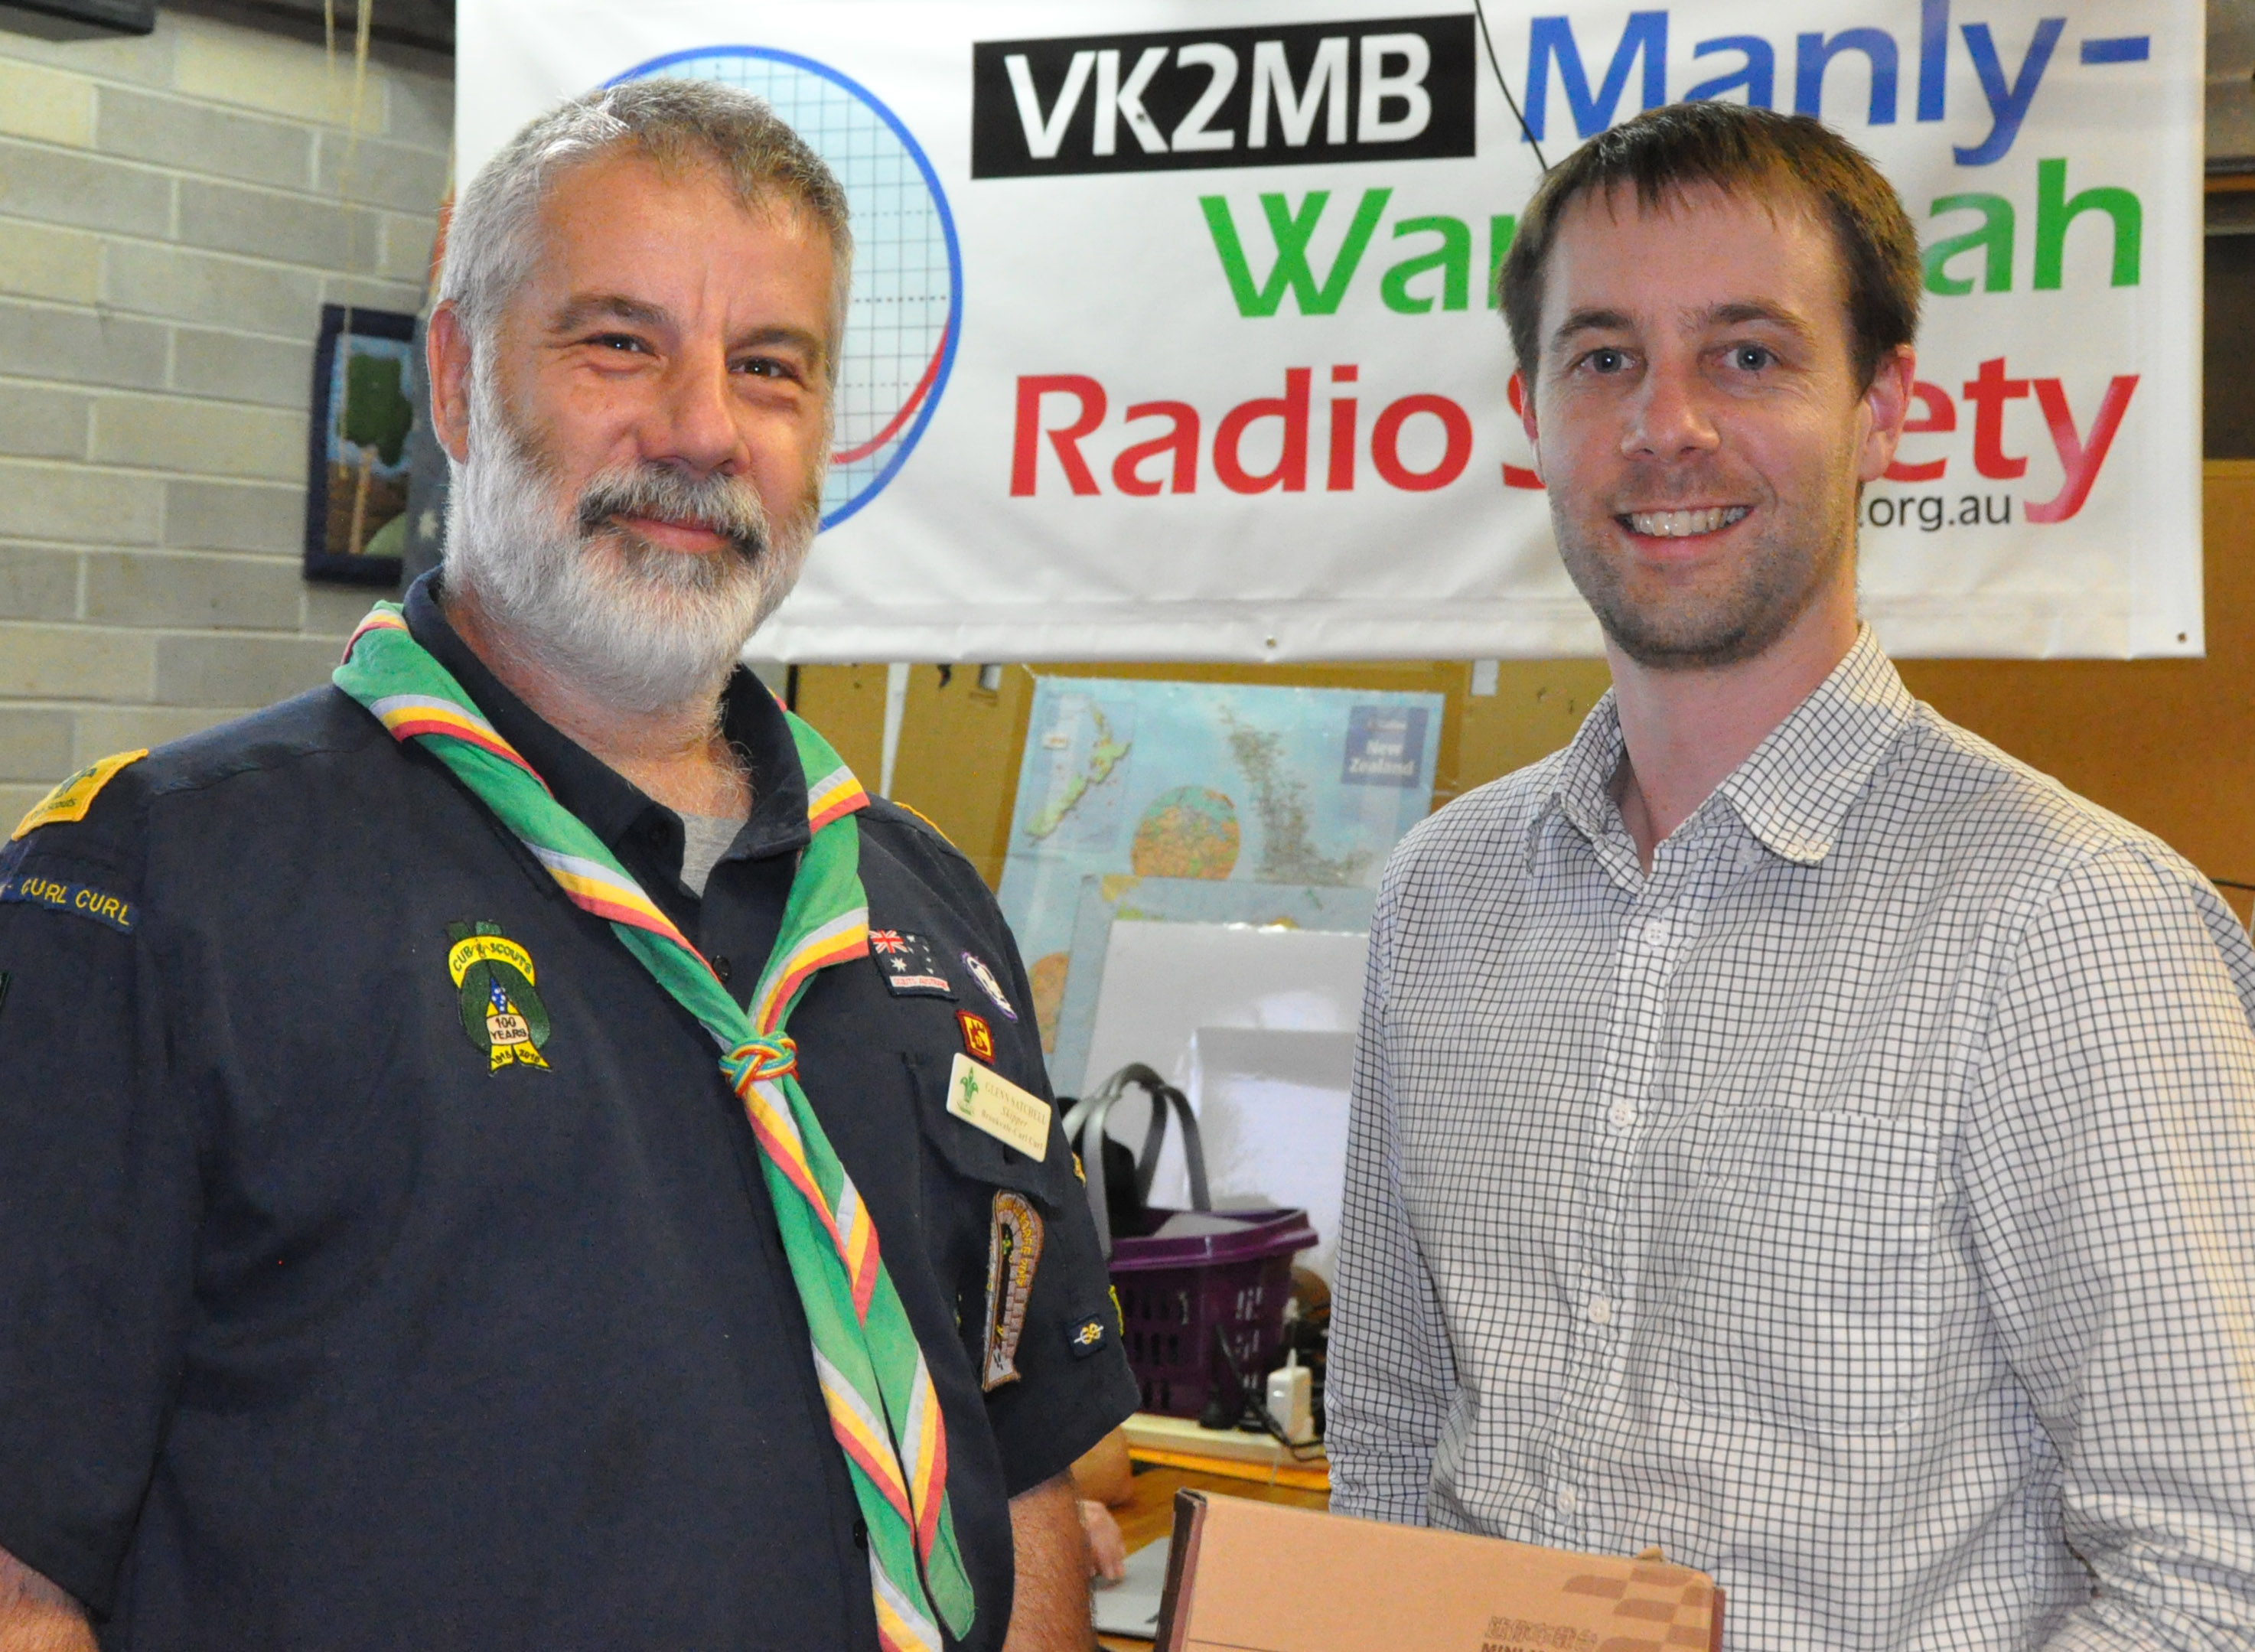 """Search Results for """"APRS"""" – VK2MB: Manly-Warringah Radio Society"""